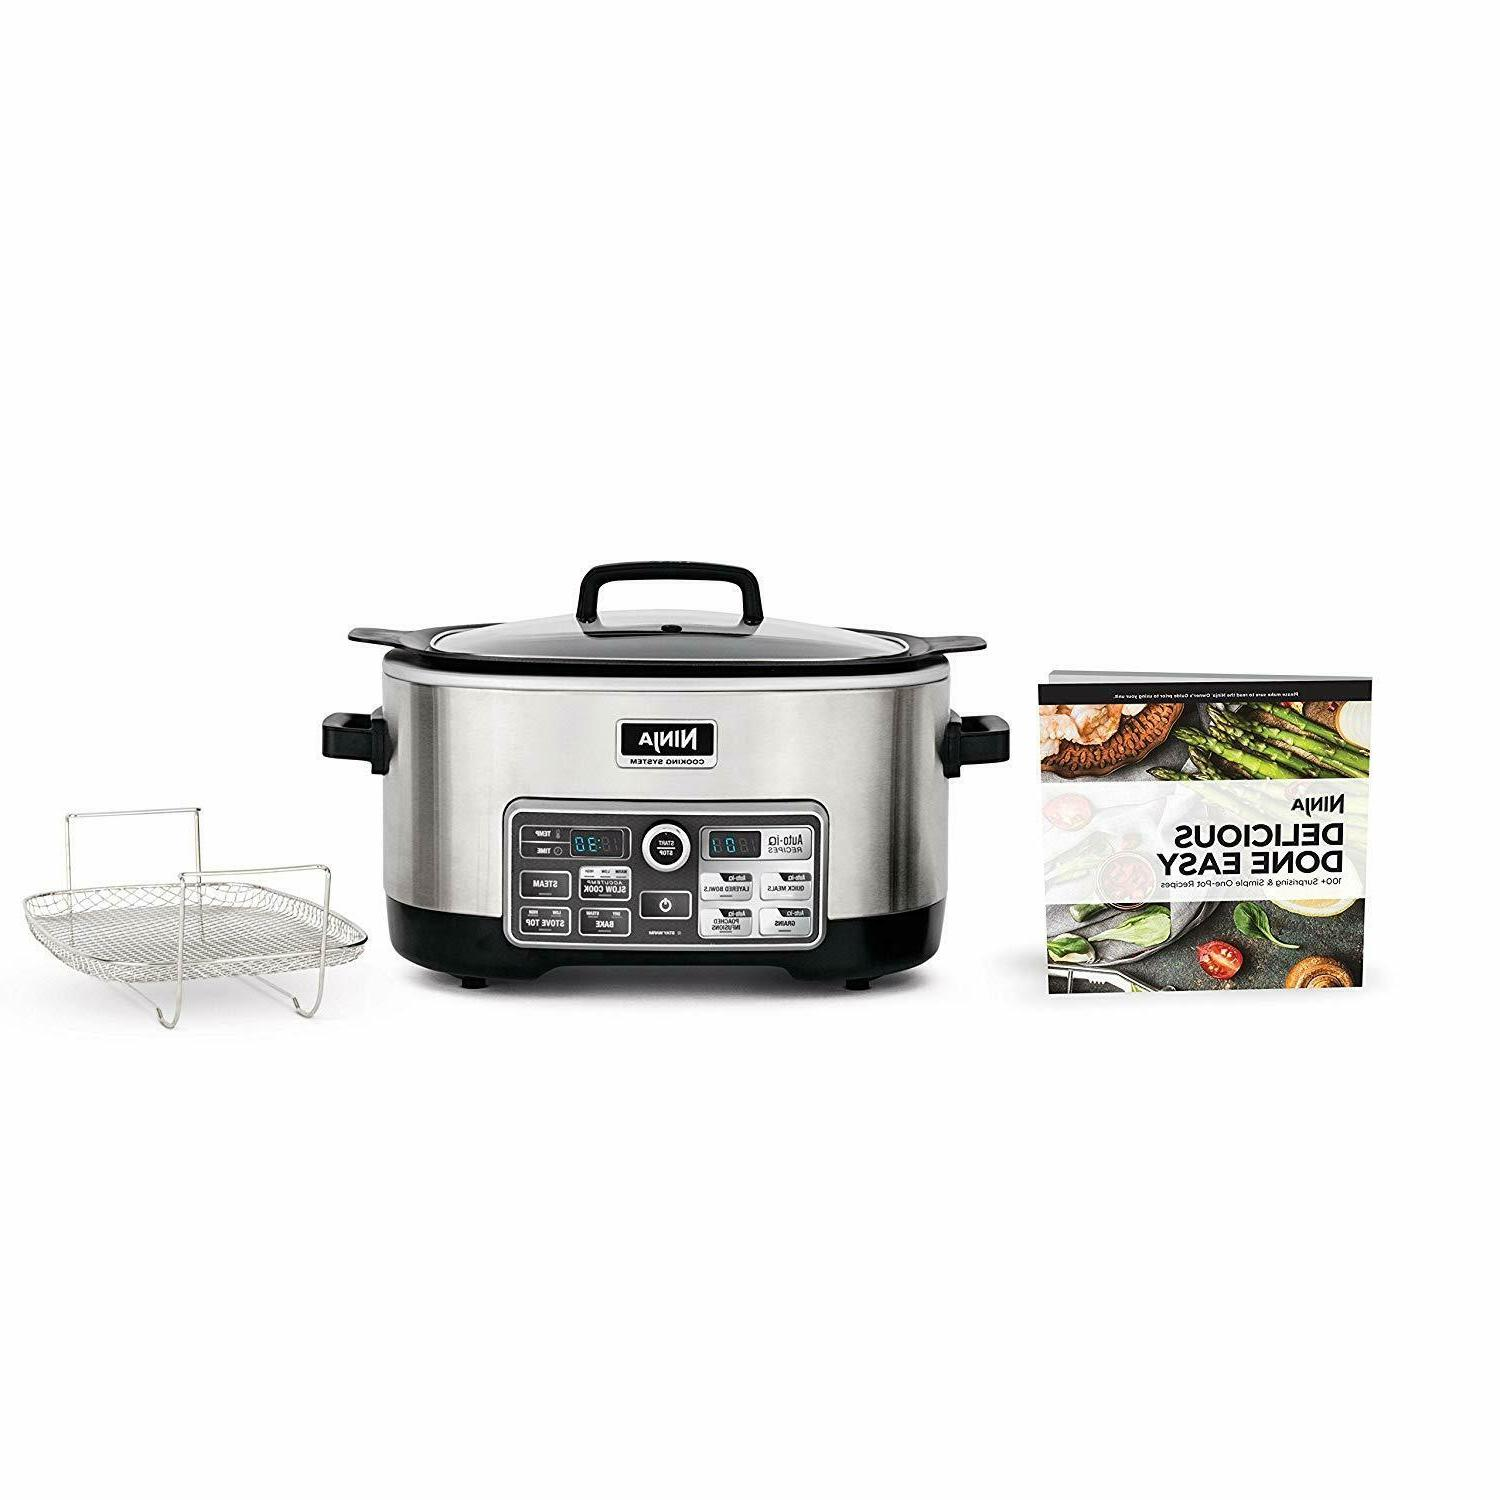 ninja cs960 cooking system